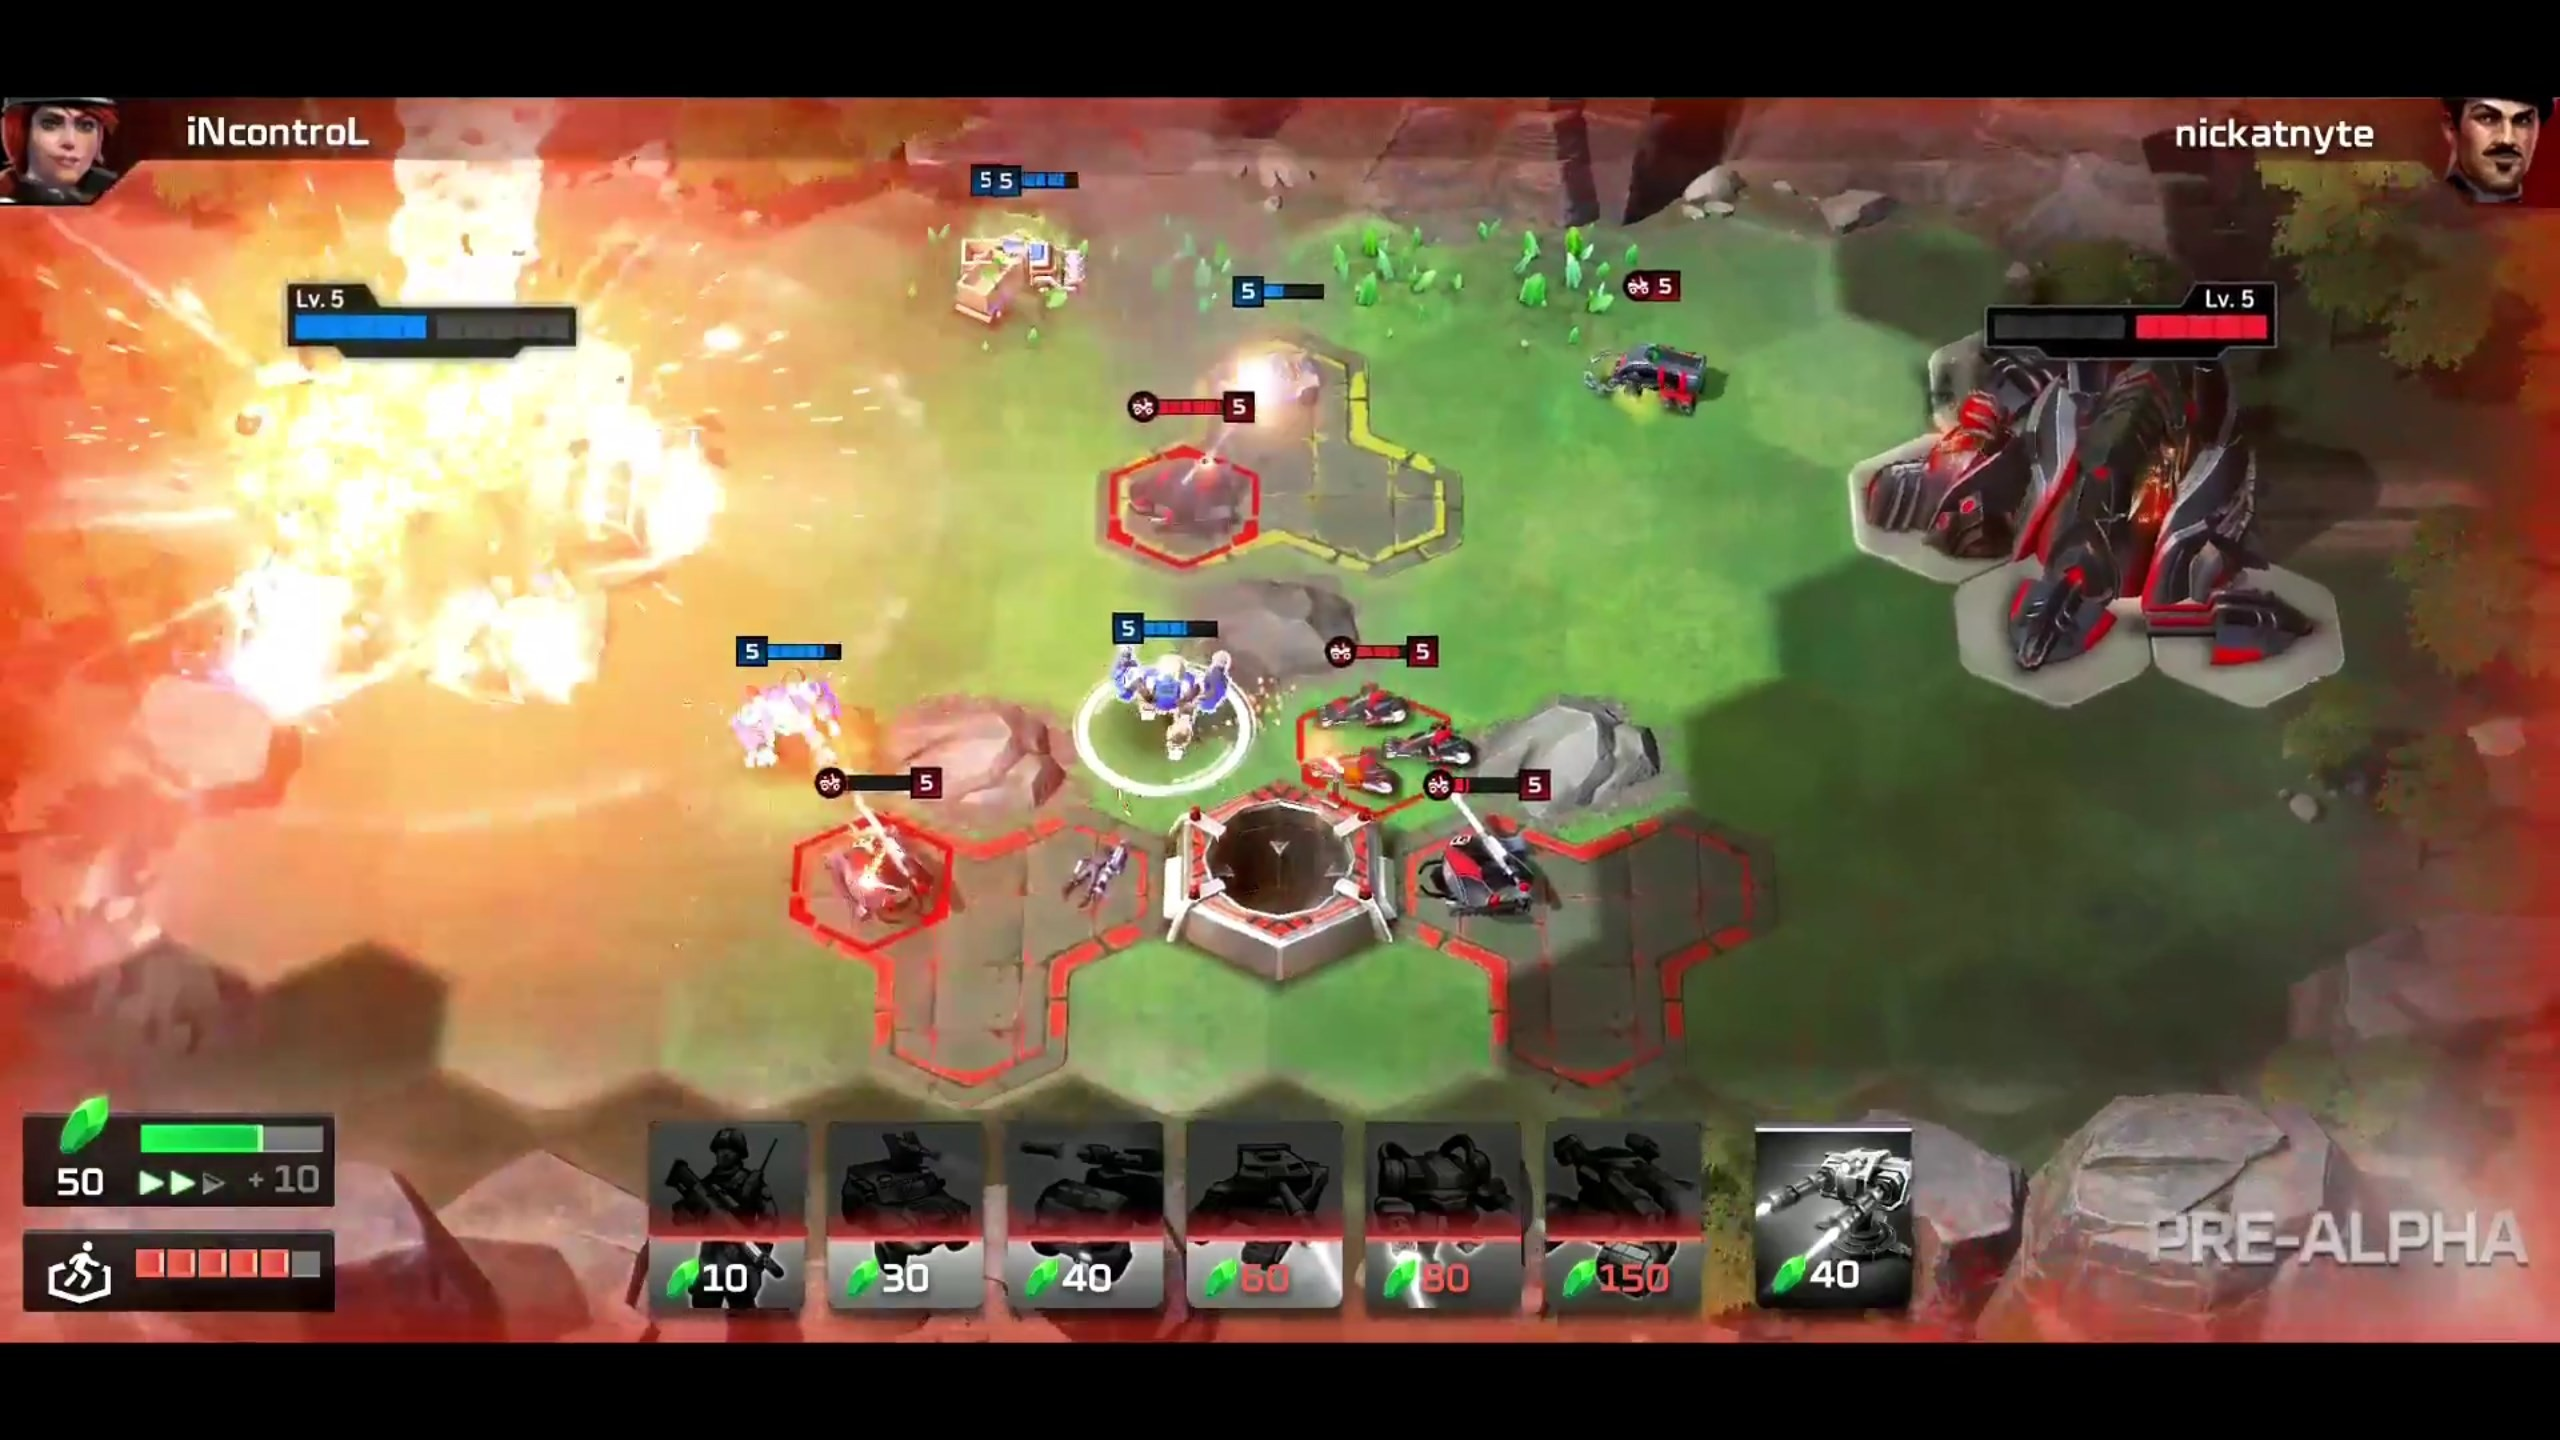 Command & Conquer makes its way to smartphones with Rivals